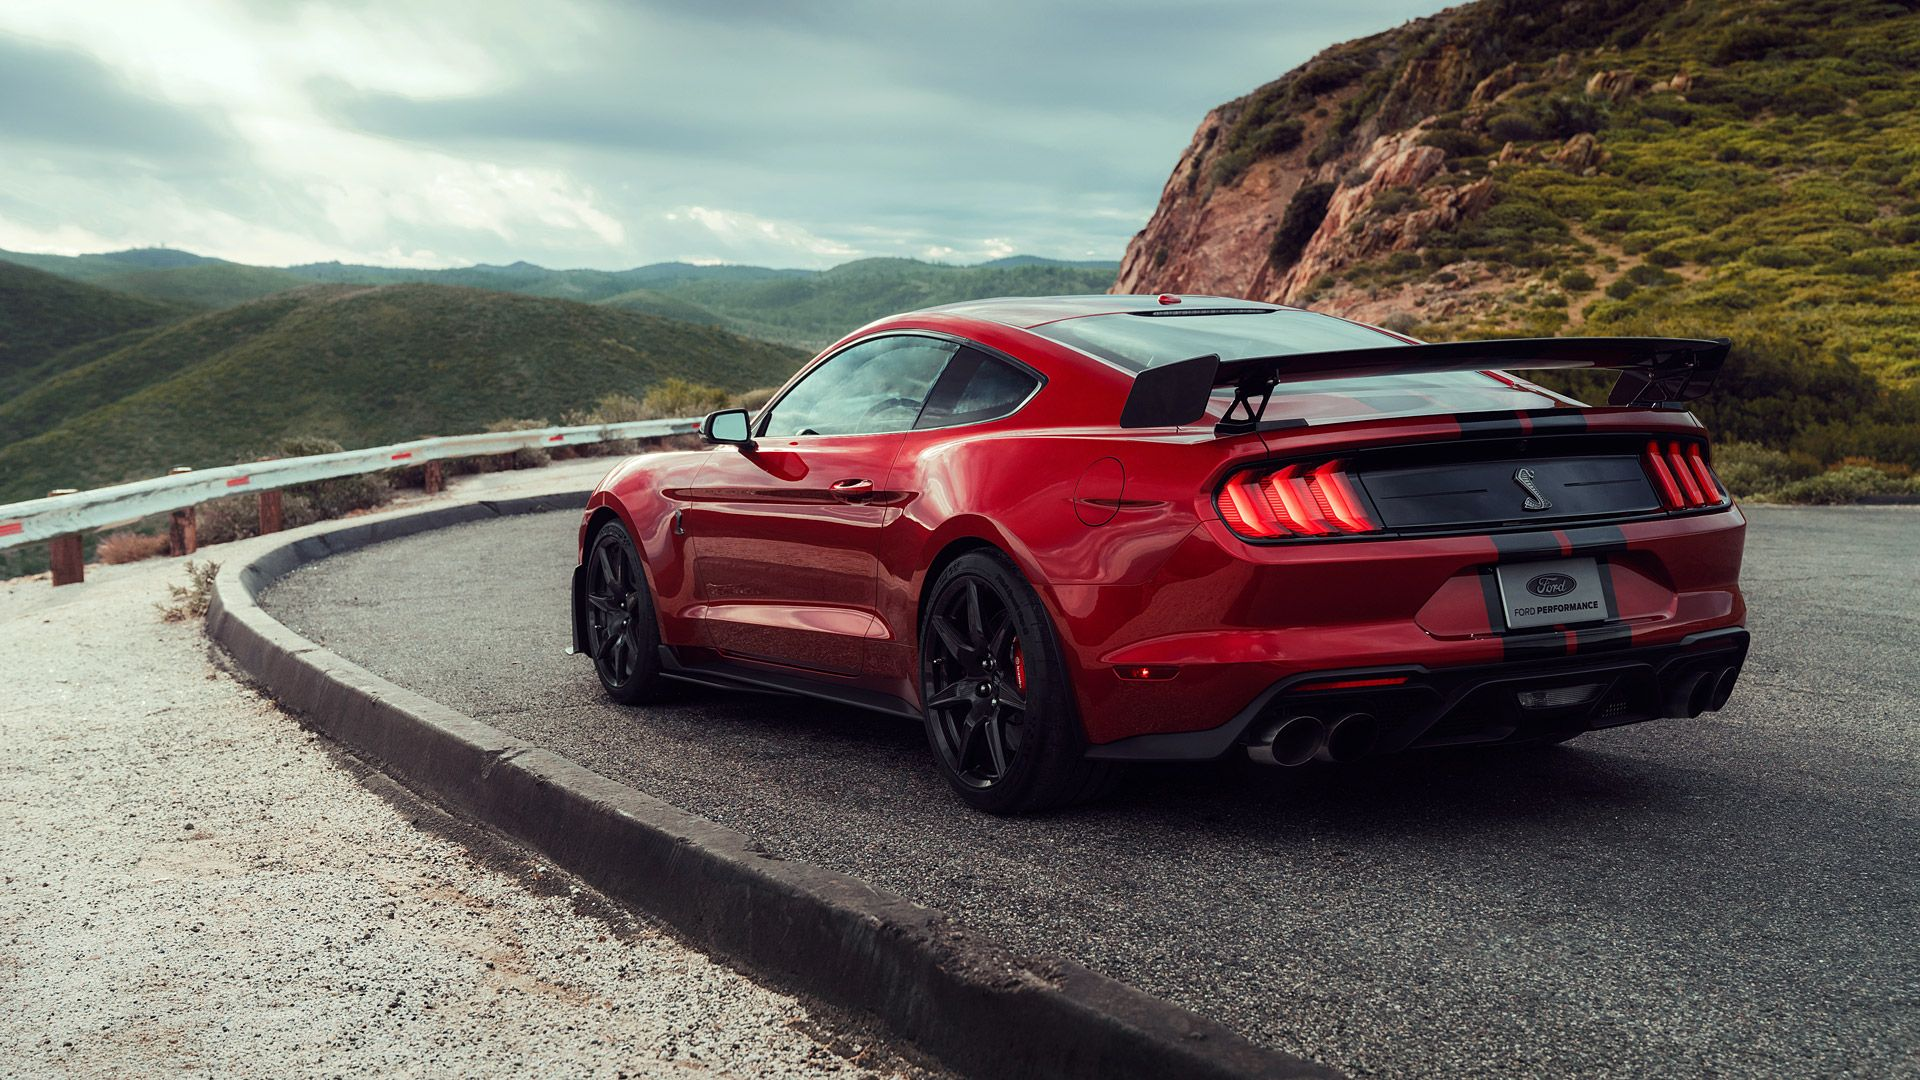 Red Mustang Wallpapers Top Free Red Mustang Backgrounds Wallpaperaccess